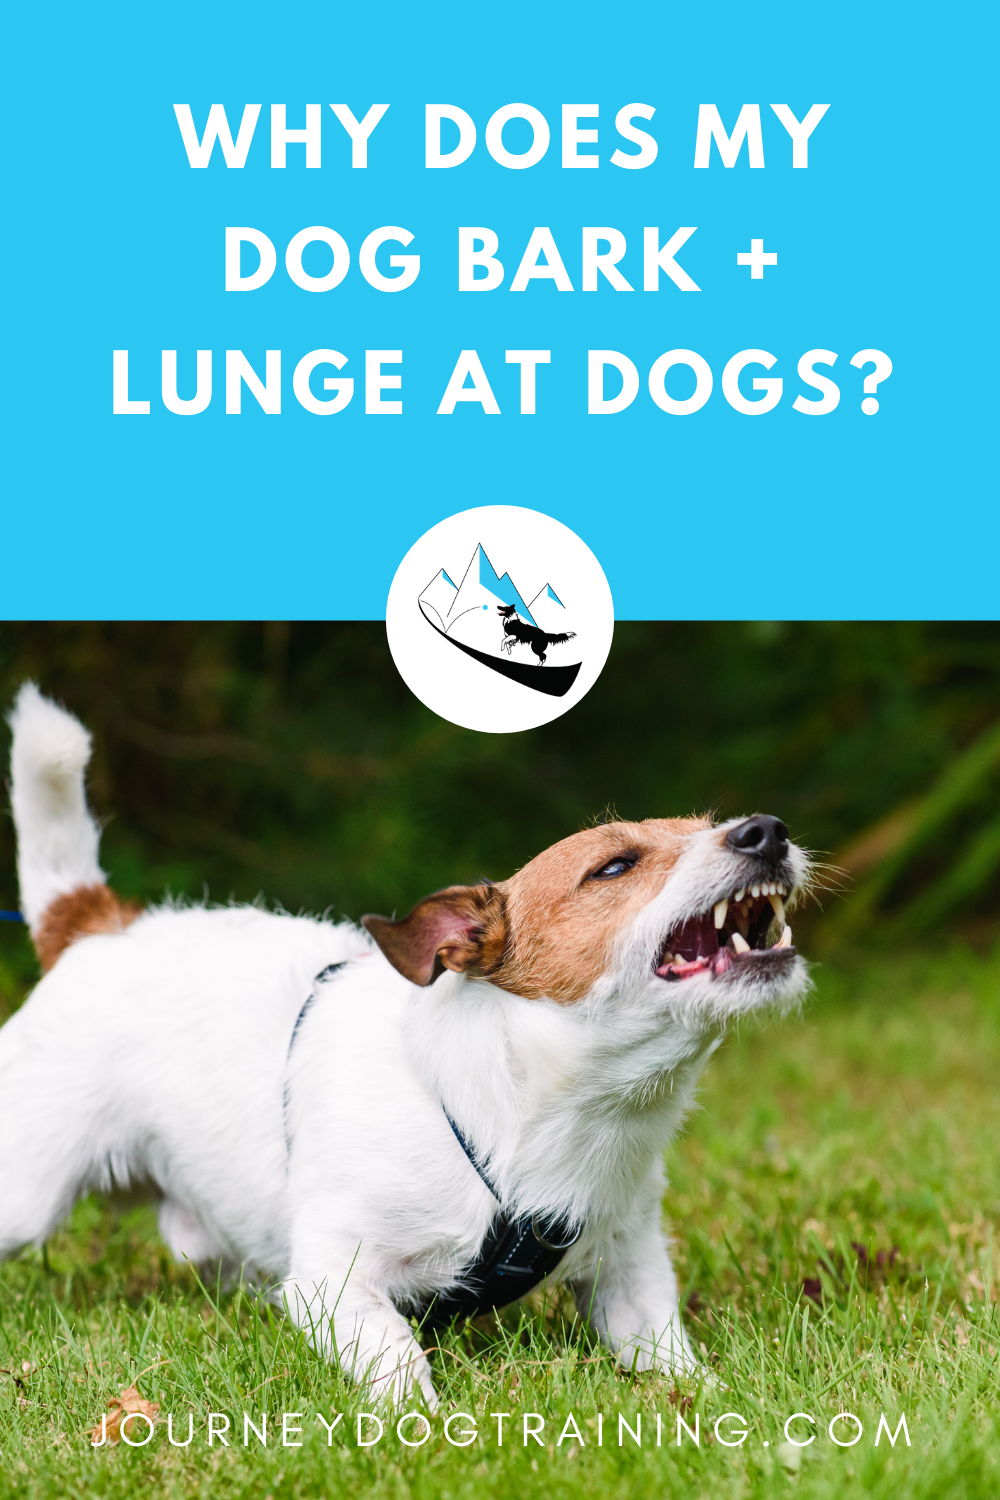 Why does my dog bark and lunge at other dogs? | journeydogtraining.com